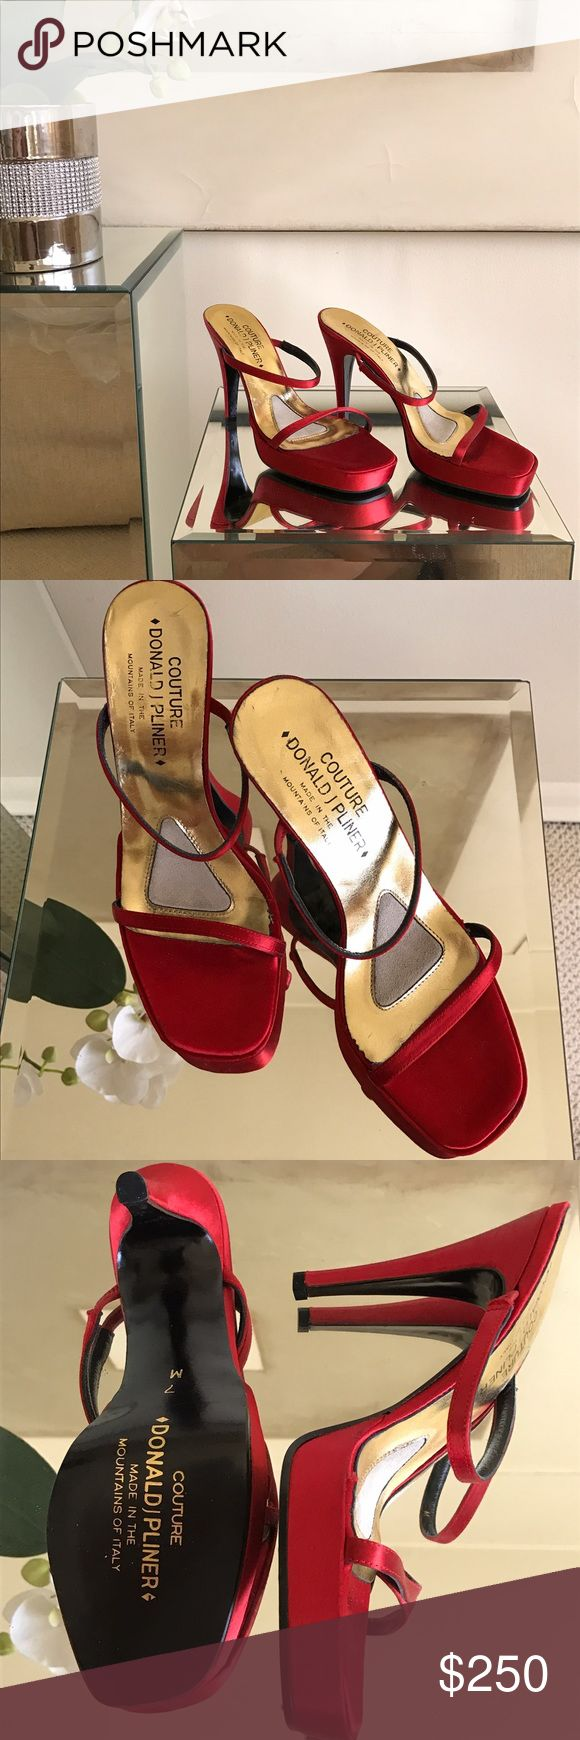 Donald J Pliner Couture high heel evening sandals Ladies, these are gorgeous never worn strappy high heel evening sandals from Donald Pliner couture collection. Red silk satin made in Italy size IT 37/US 7.  Perfect for a fabulous black tie summer evening. No trades. Thank you! Donald J. Pliner Shoes Sandals